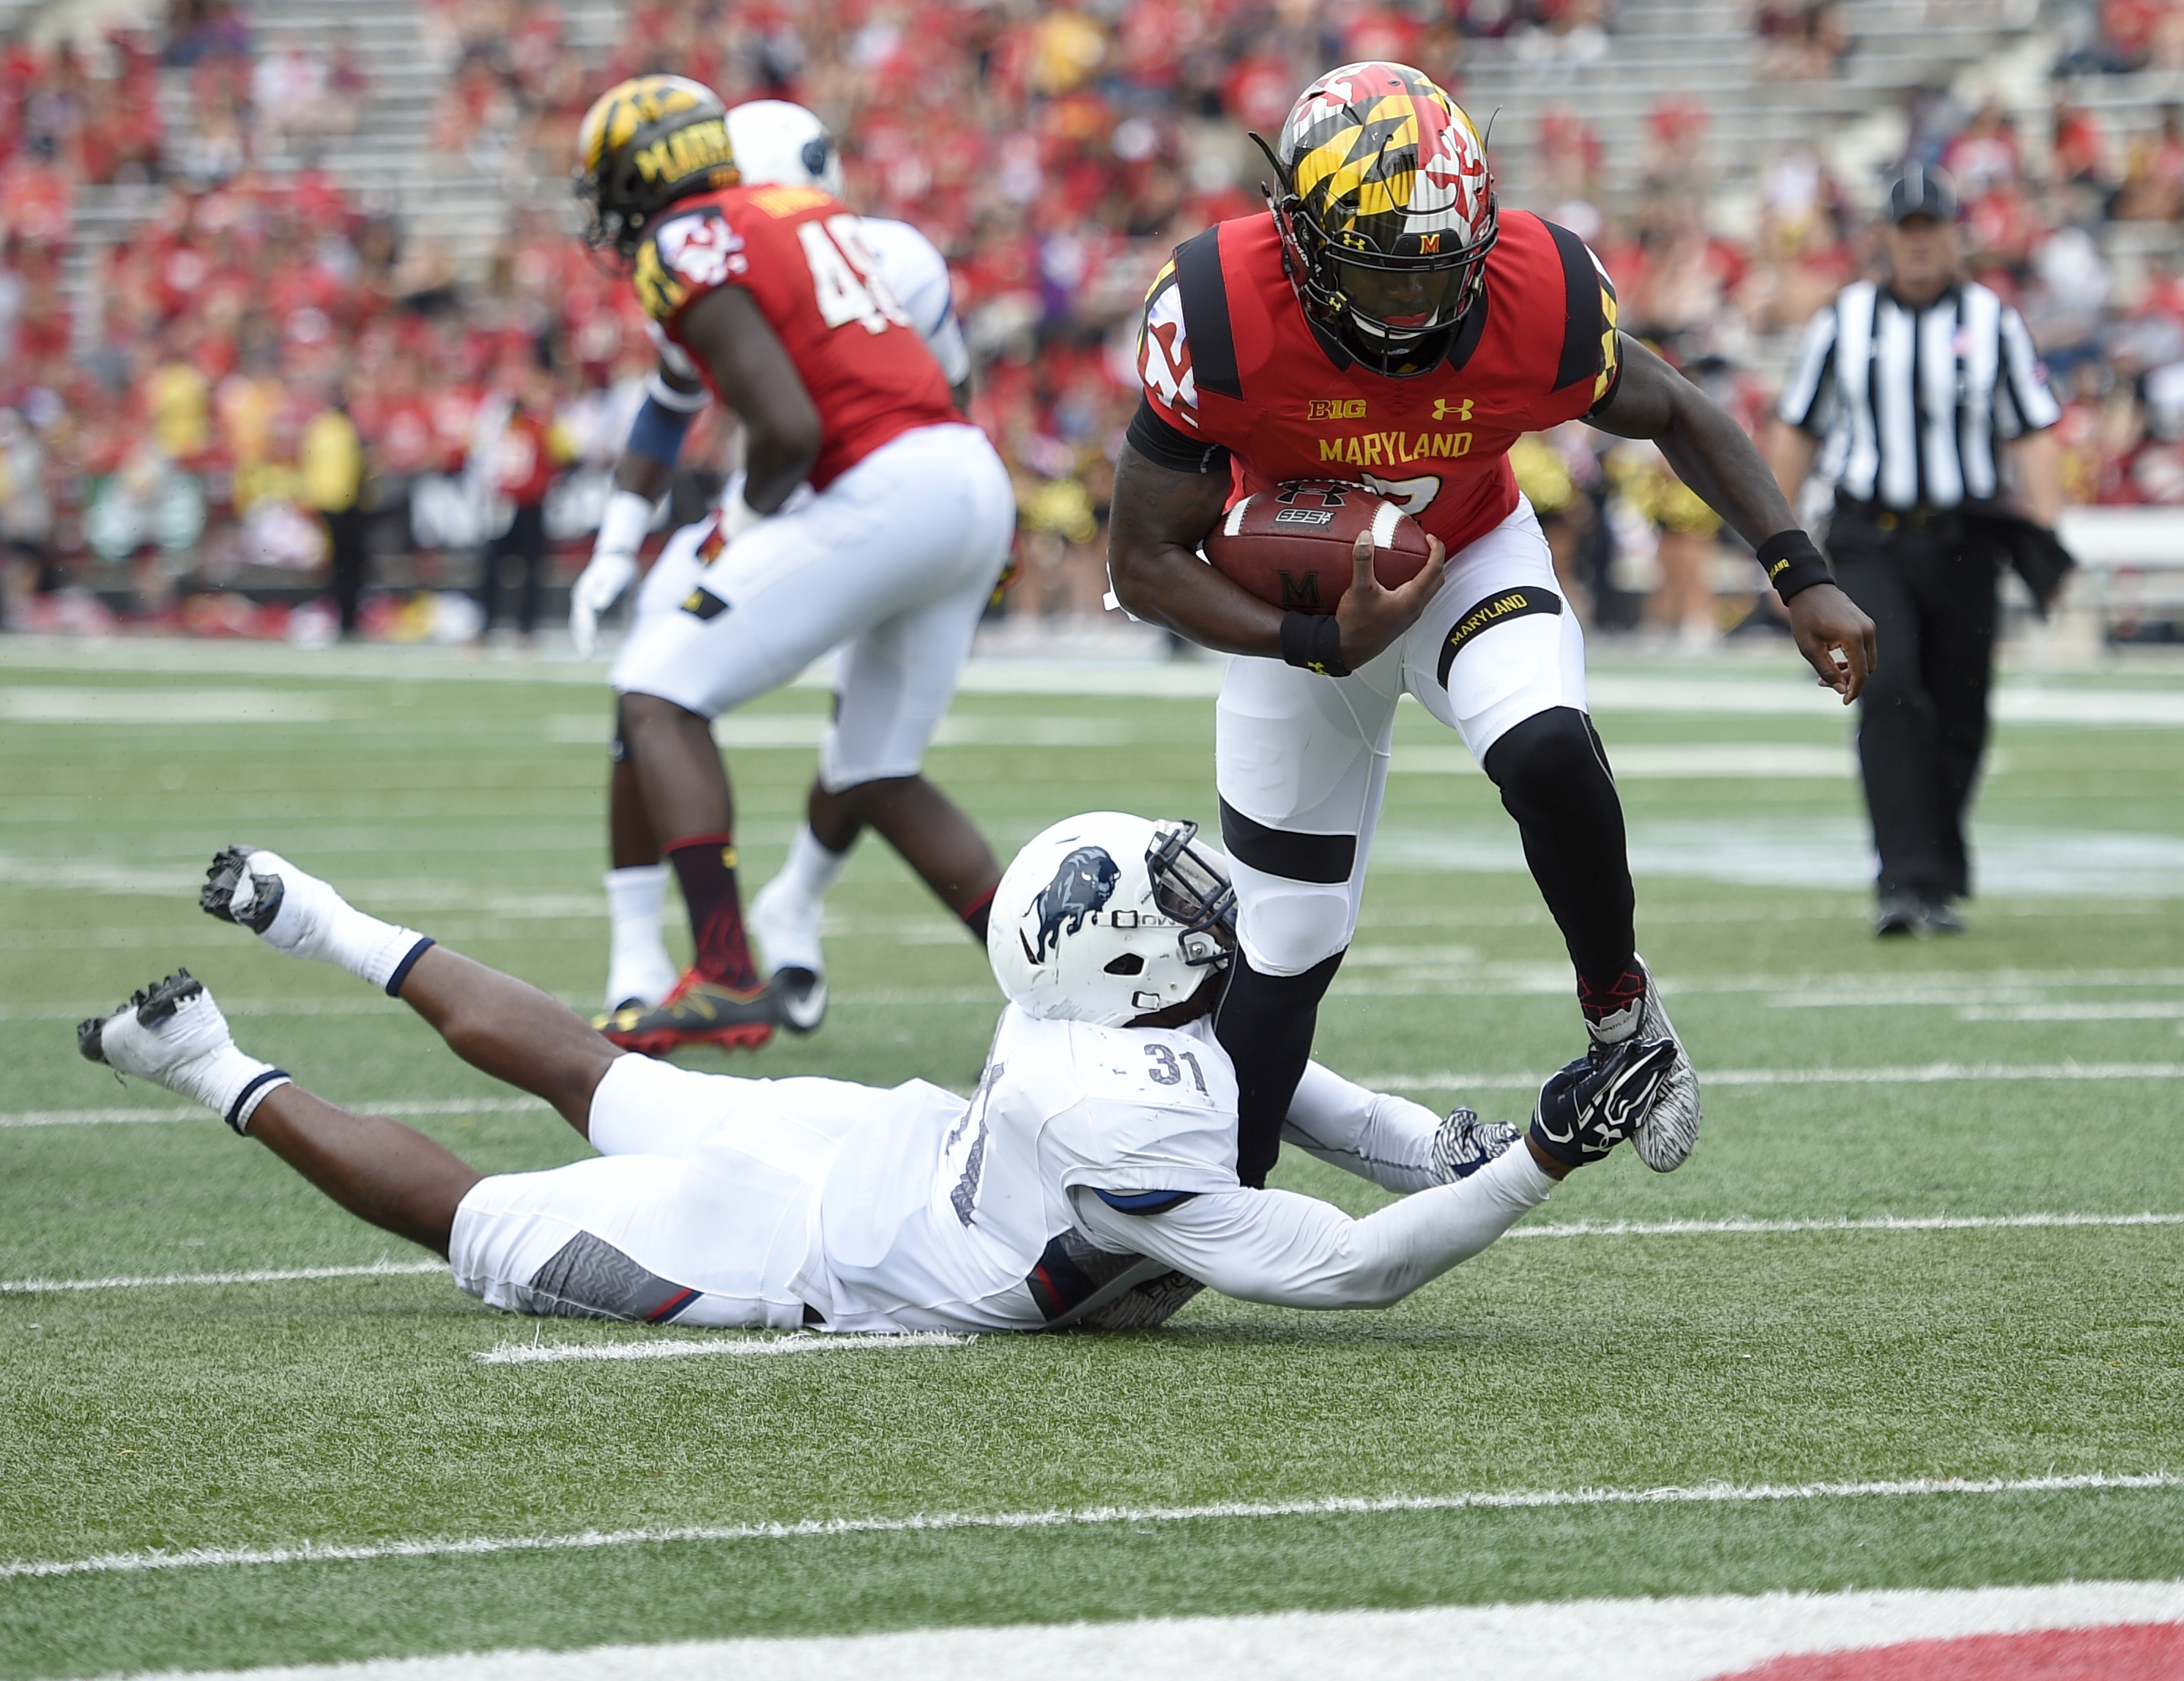 FILE - In this Sept. 3, 2016, file photo, Maryland quarterback Tyrrell Pigrome, right, runs past Howard linebacker David Lee (31) on the way to a touchdown during an NCAA football game in College Park, Md. Perry Hills was injured in Maryland's 38-14 loss